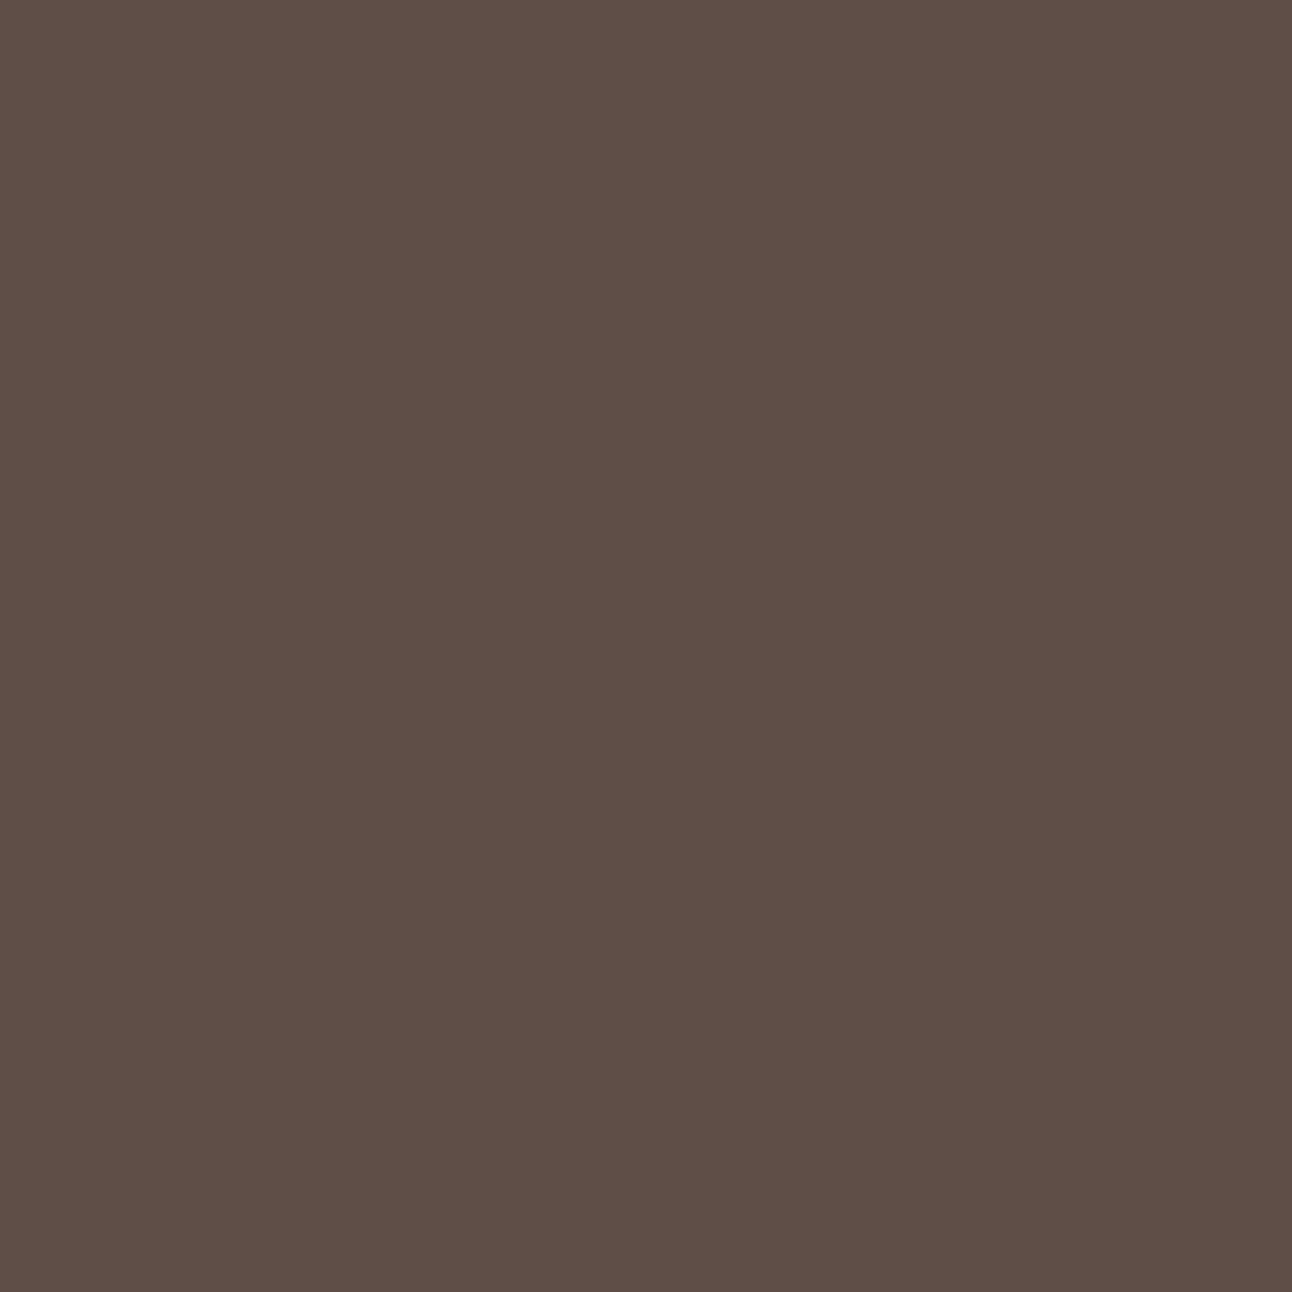 Country Chic Paint- All in One: Chocolate Tart 16oz Paint